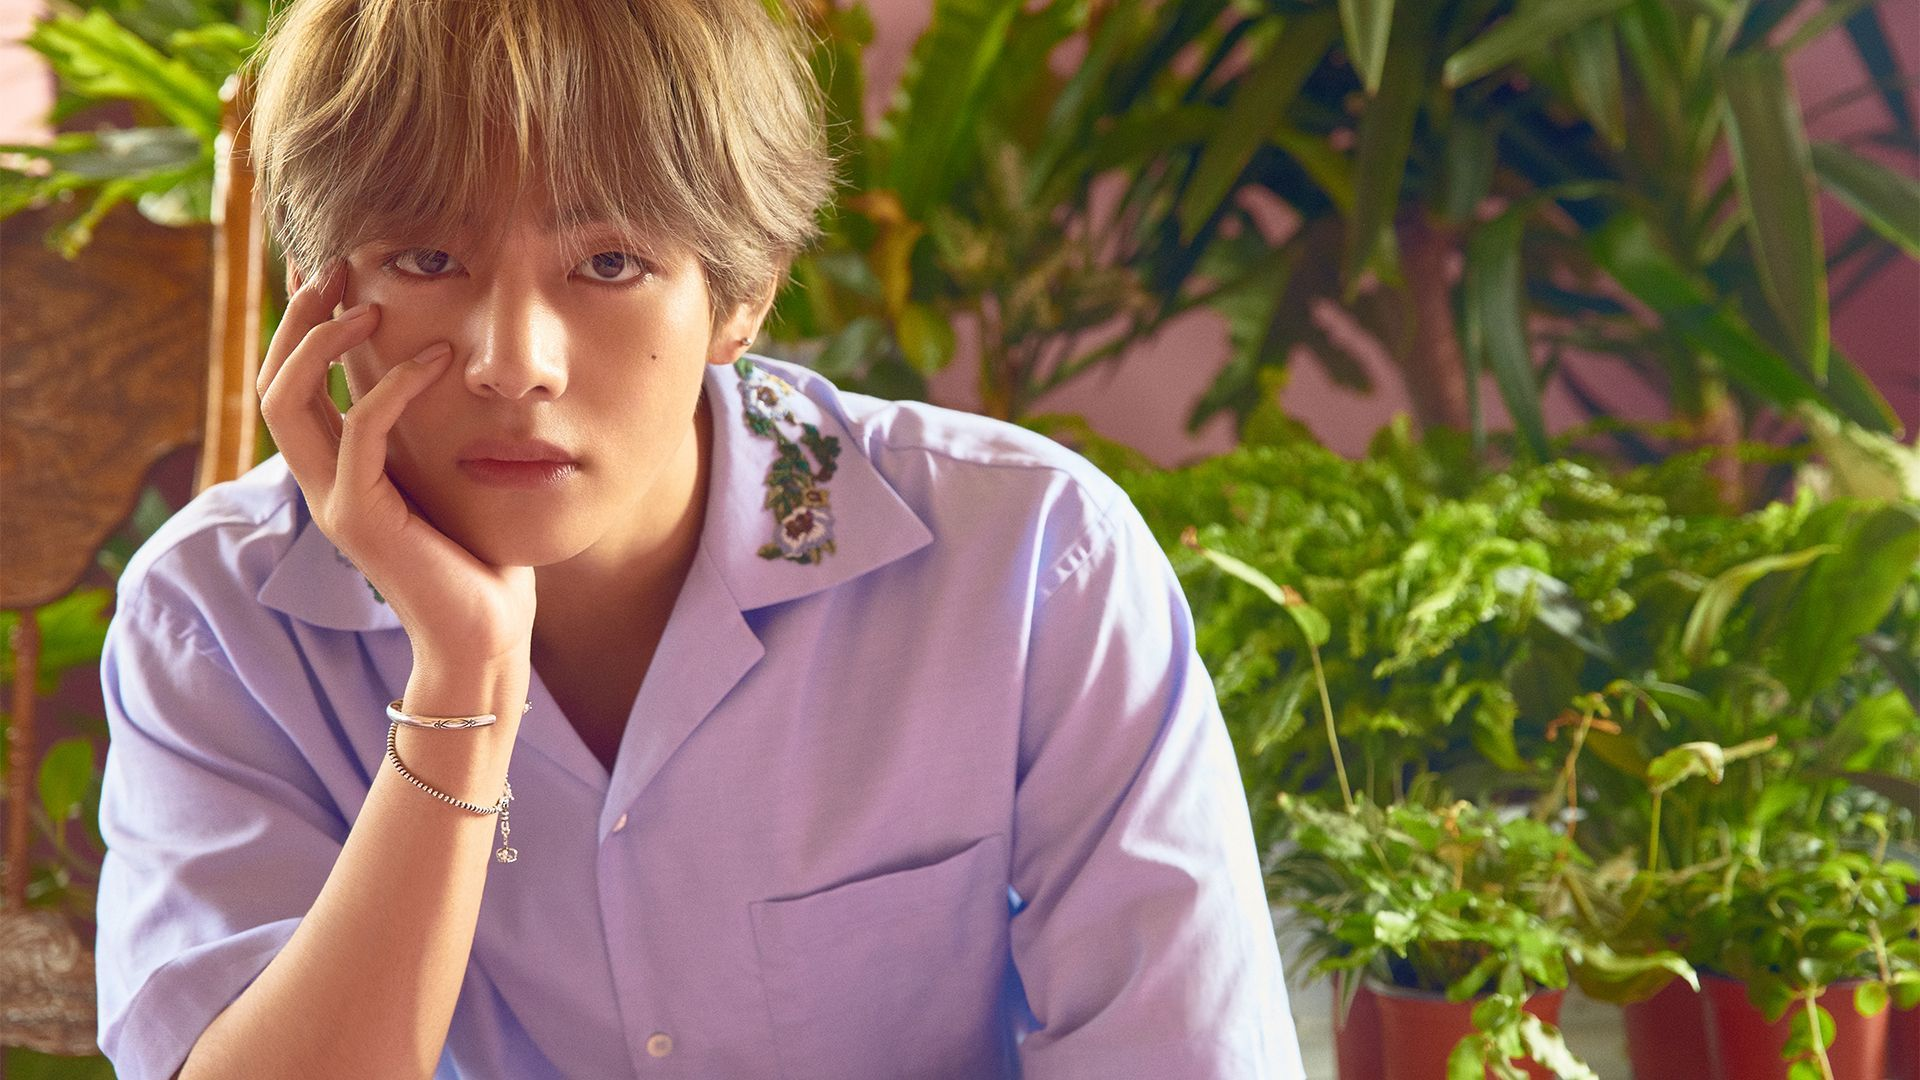 Bts V Desktop Wallpapers Top Free Bts V Desktop Backgrounds